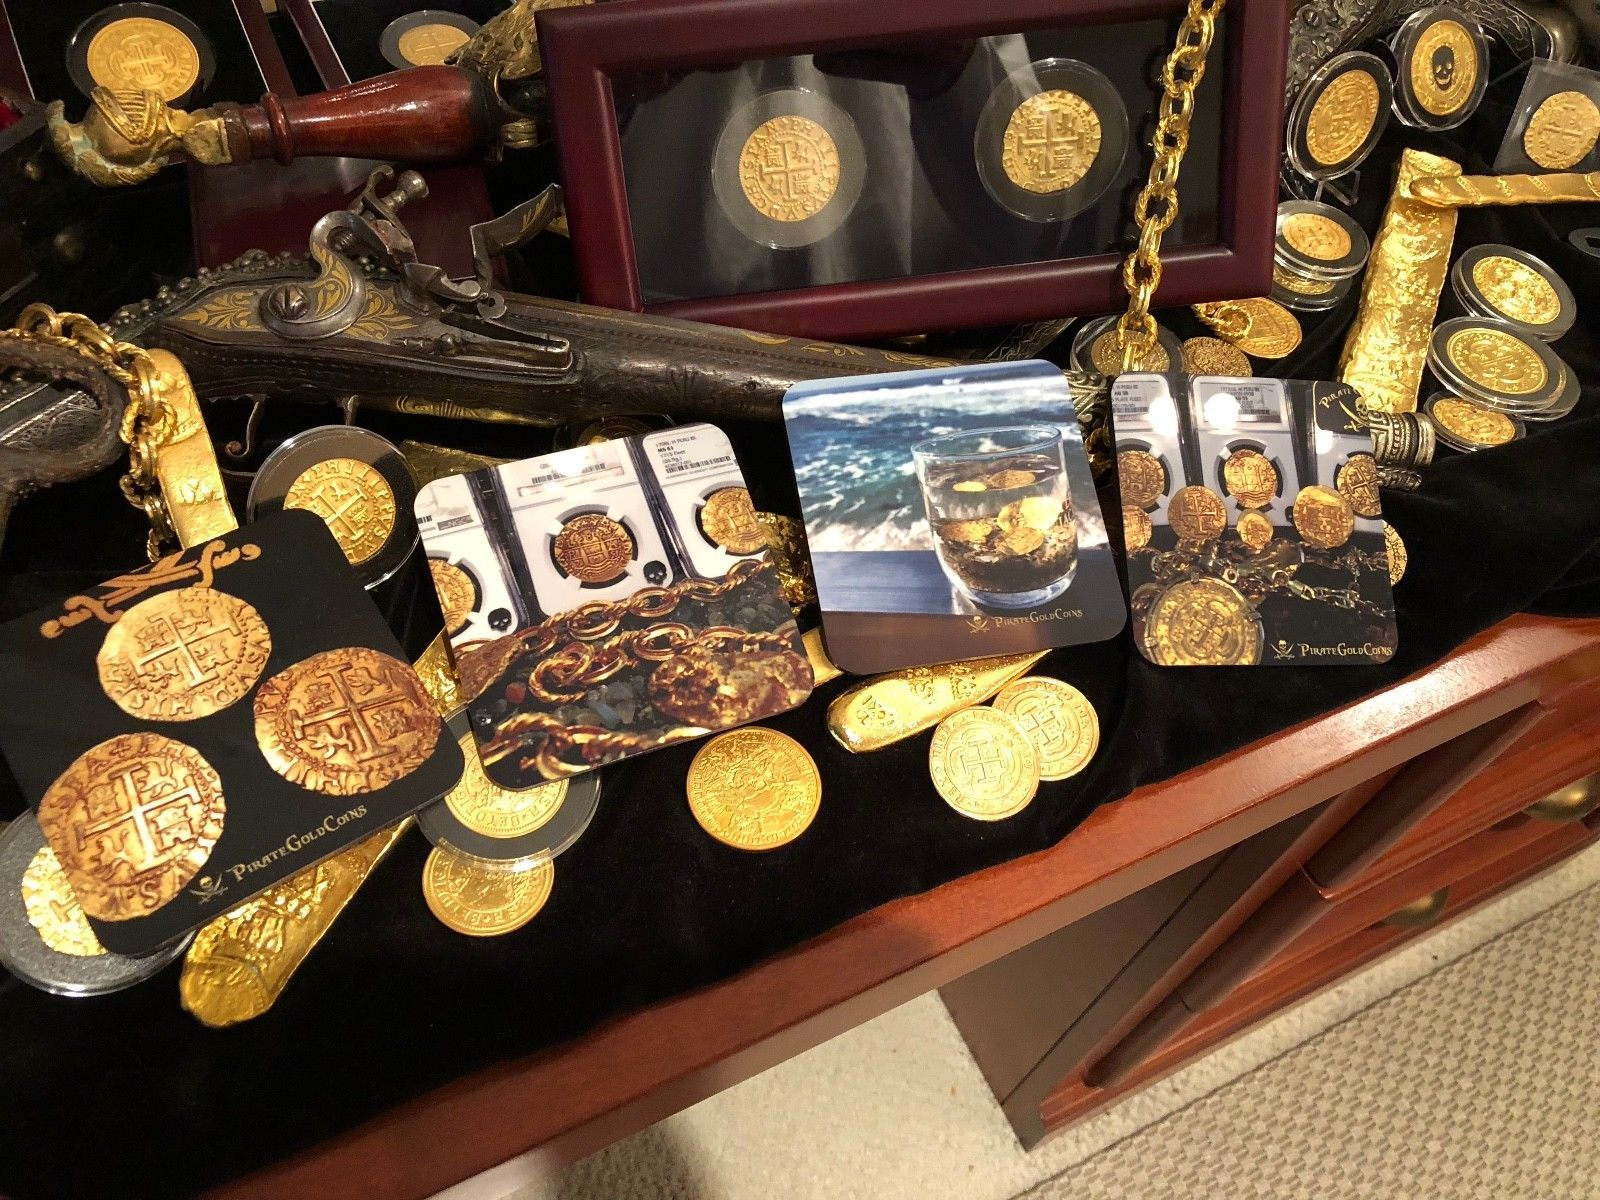 COASTERS BY PIRATE GOLD COINS SET OF 4 FAVORITE TREASURE PHOTOS OF ESCUDOS COINS